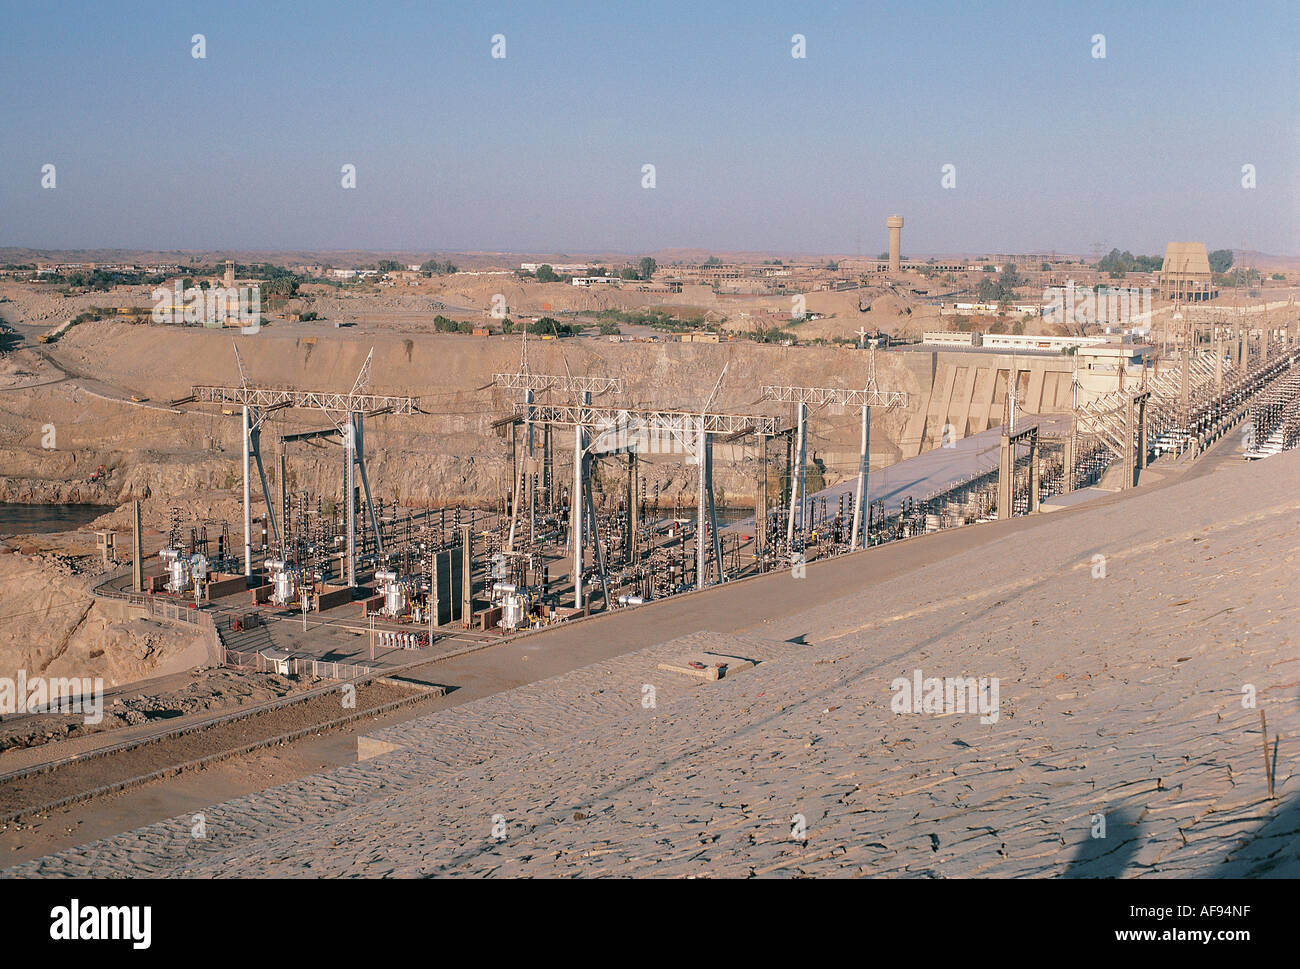 The power station power lines and transformers at the Aswan High Dam Egypt - Stock Image